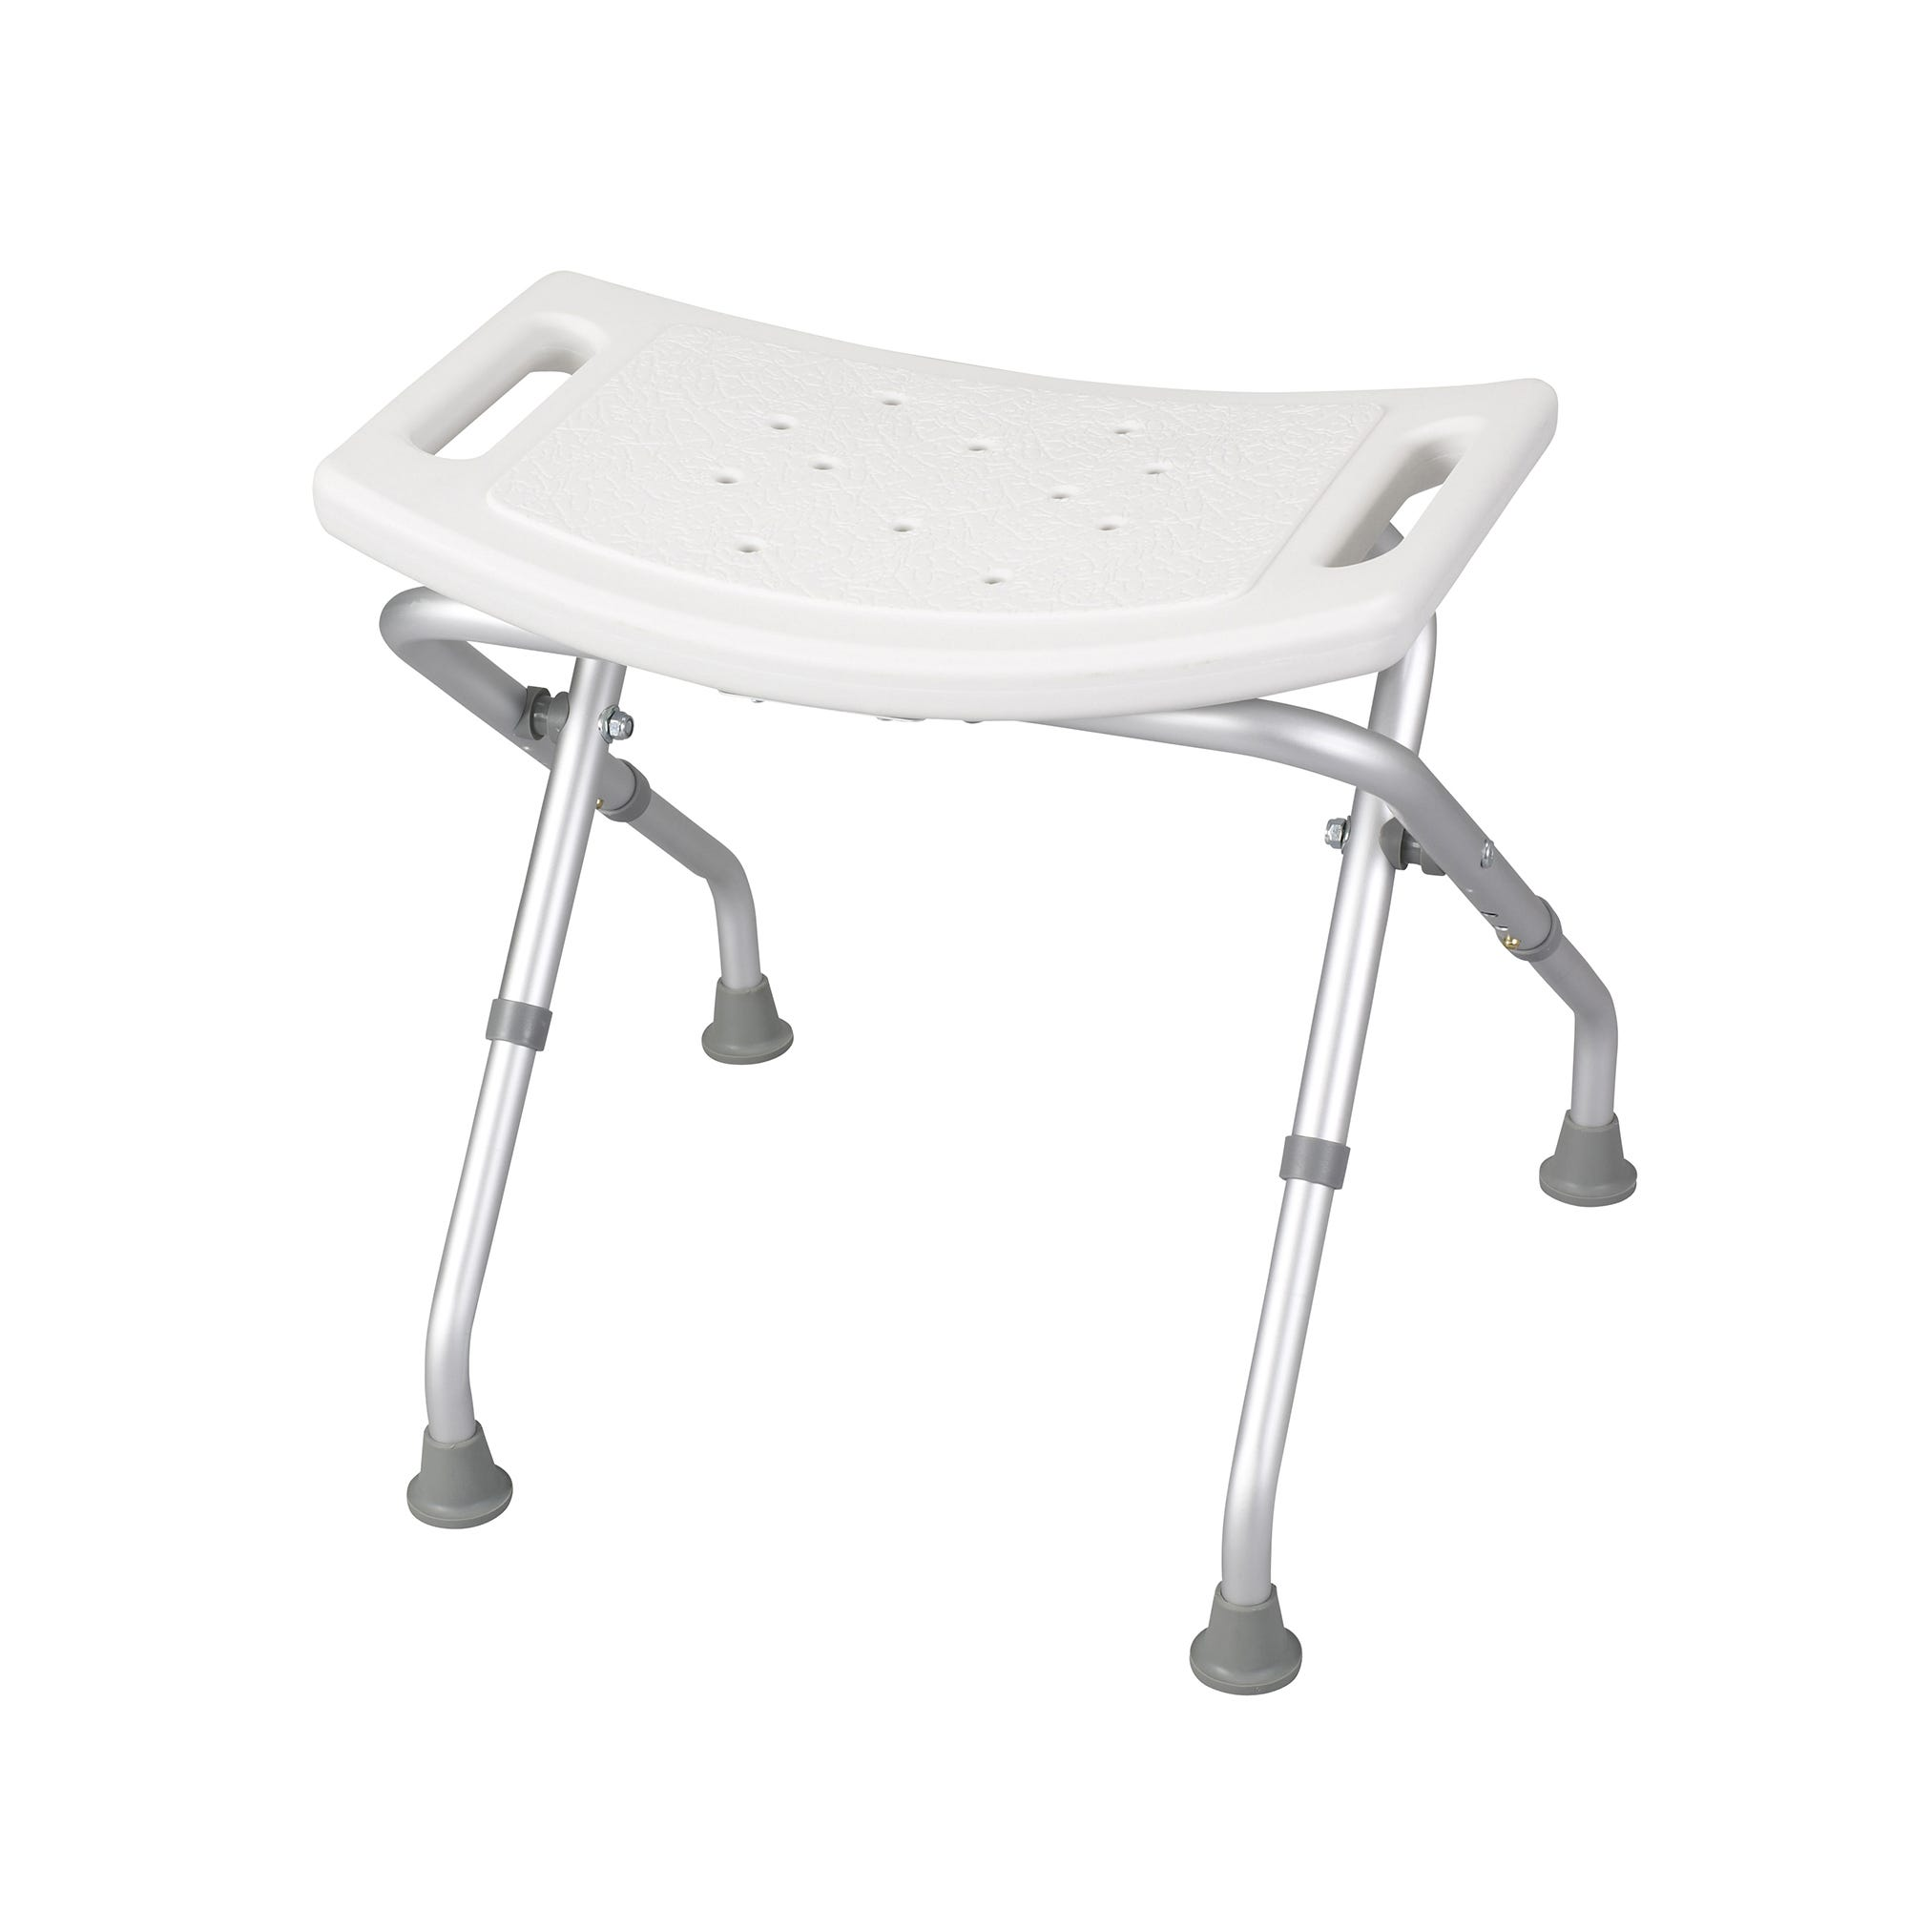 Shower Chairs - Seating & Stools - CME formerly Claflin Medical ...